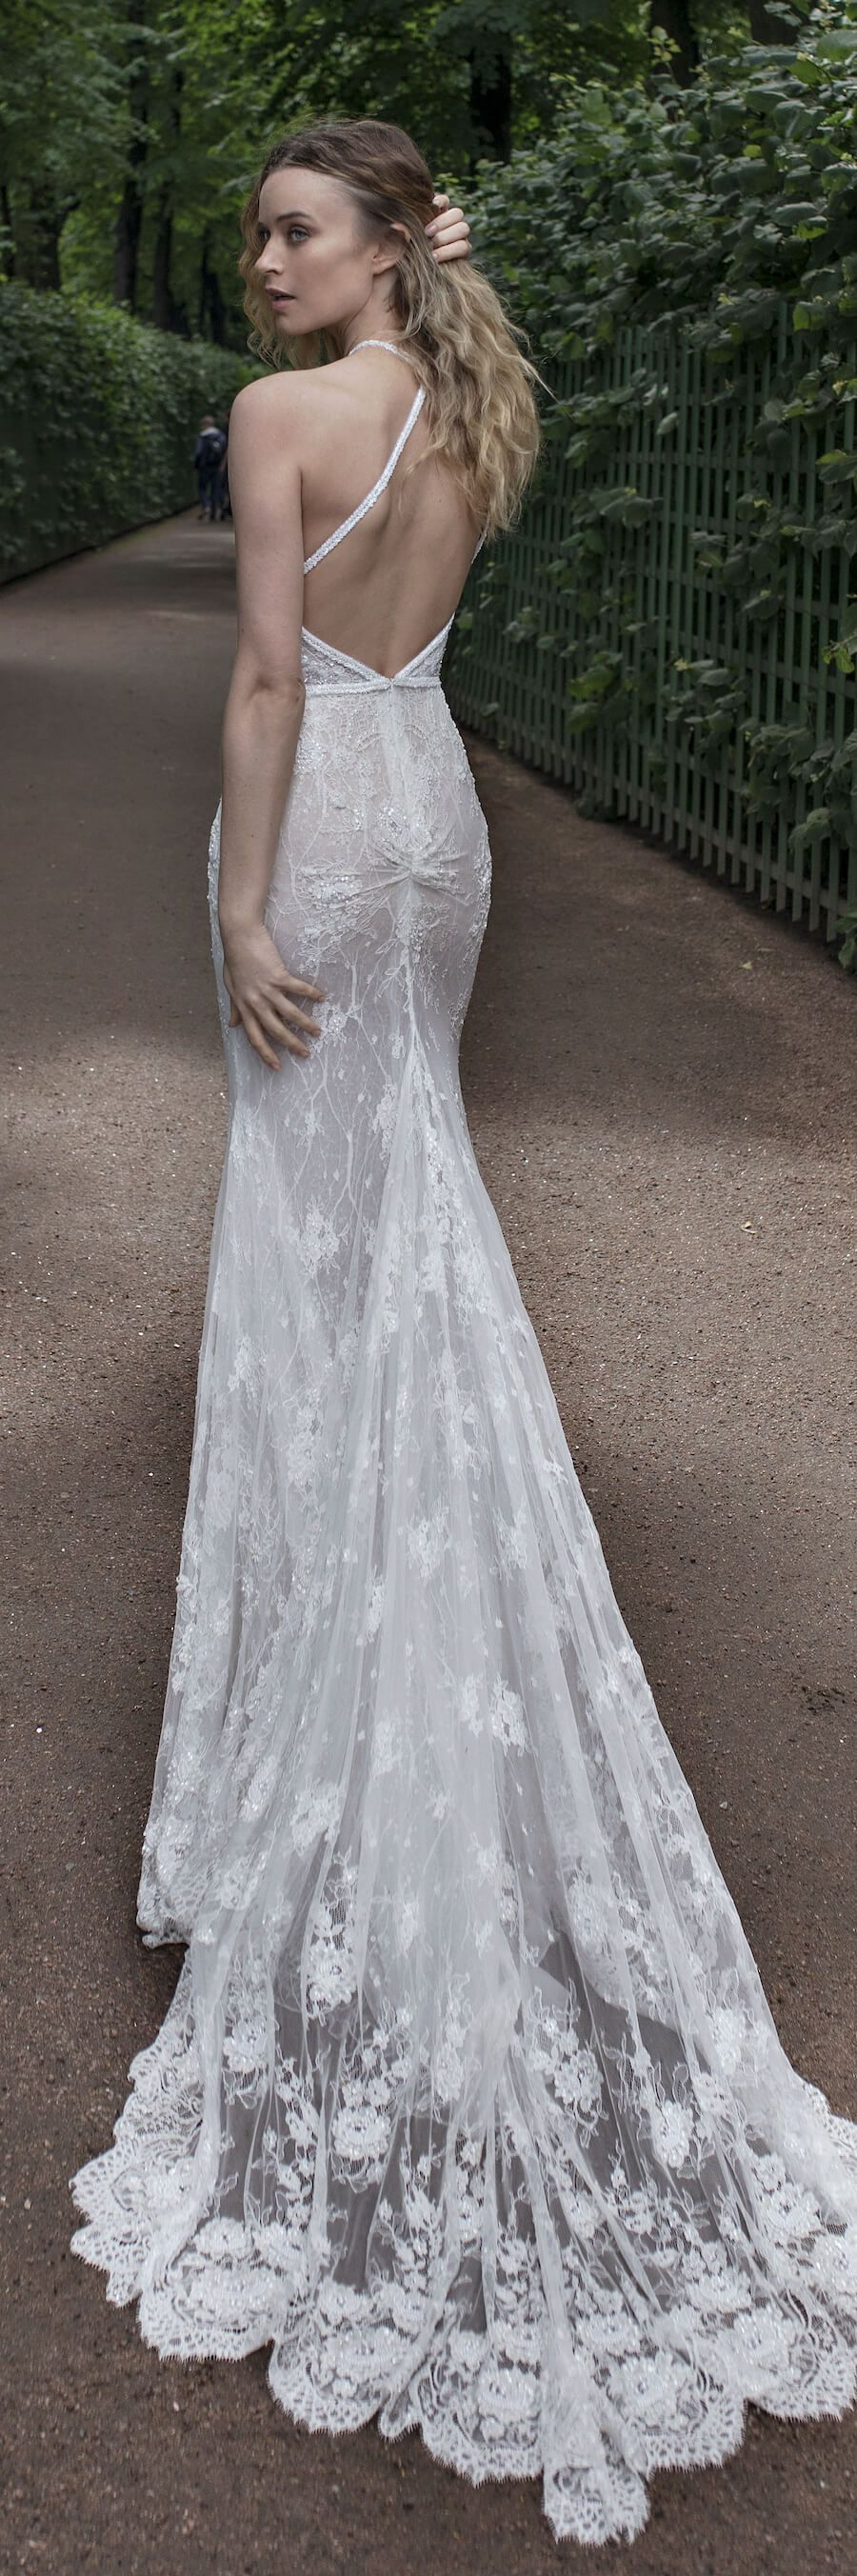 Lian rokman wedding dresses stardust bridal collection